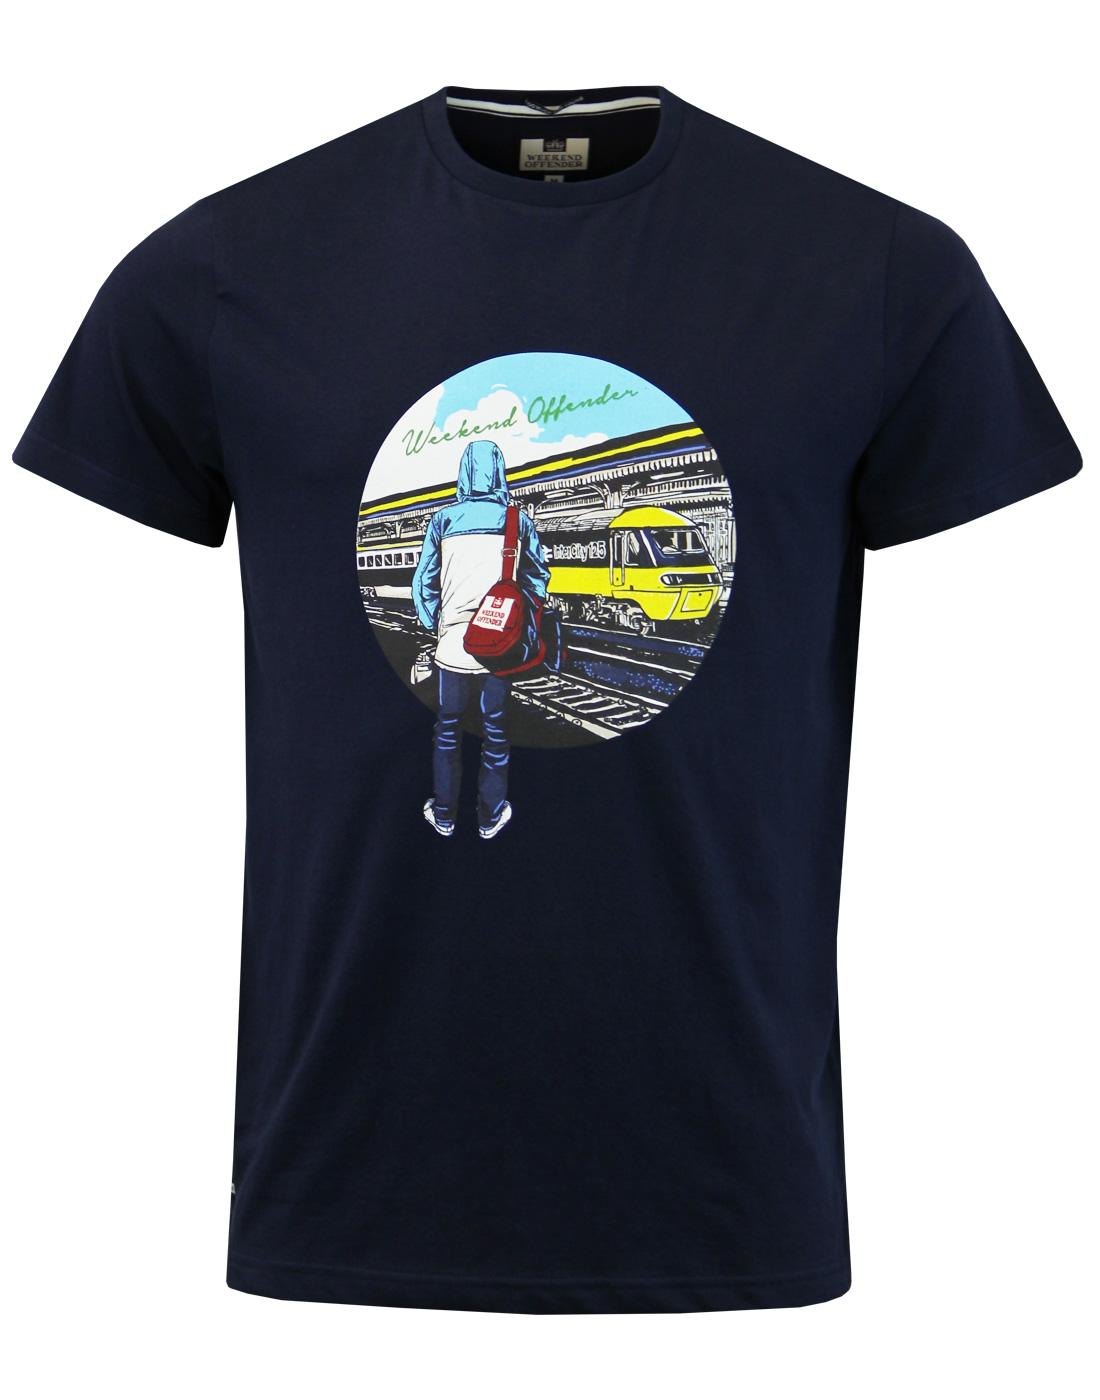 Away Days WEEKEND OFFENDER Casuals Football Tee